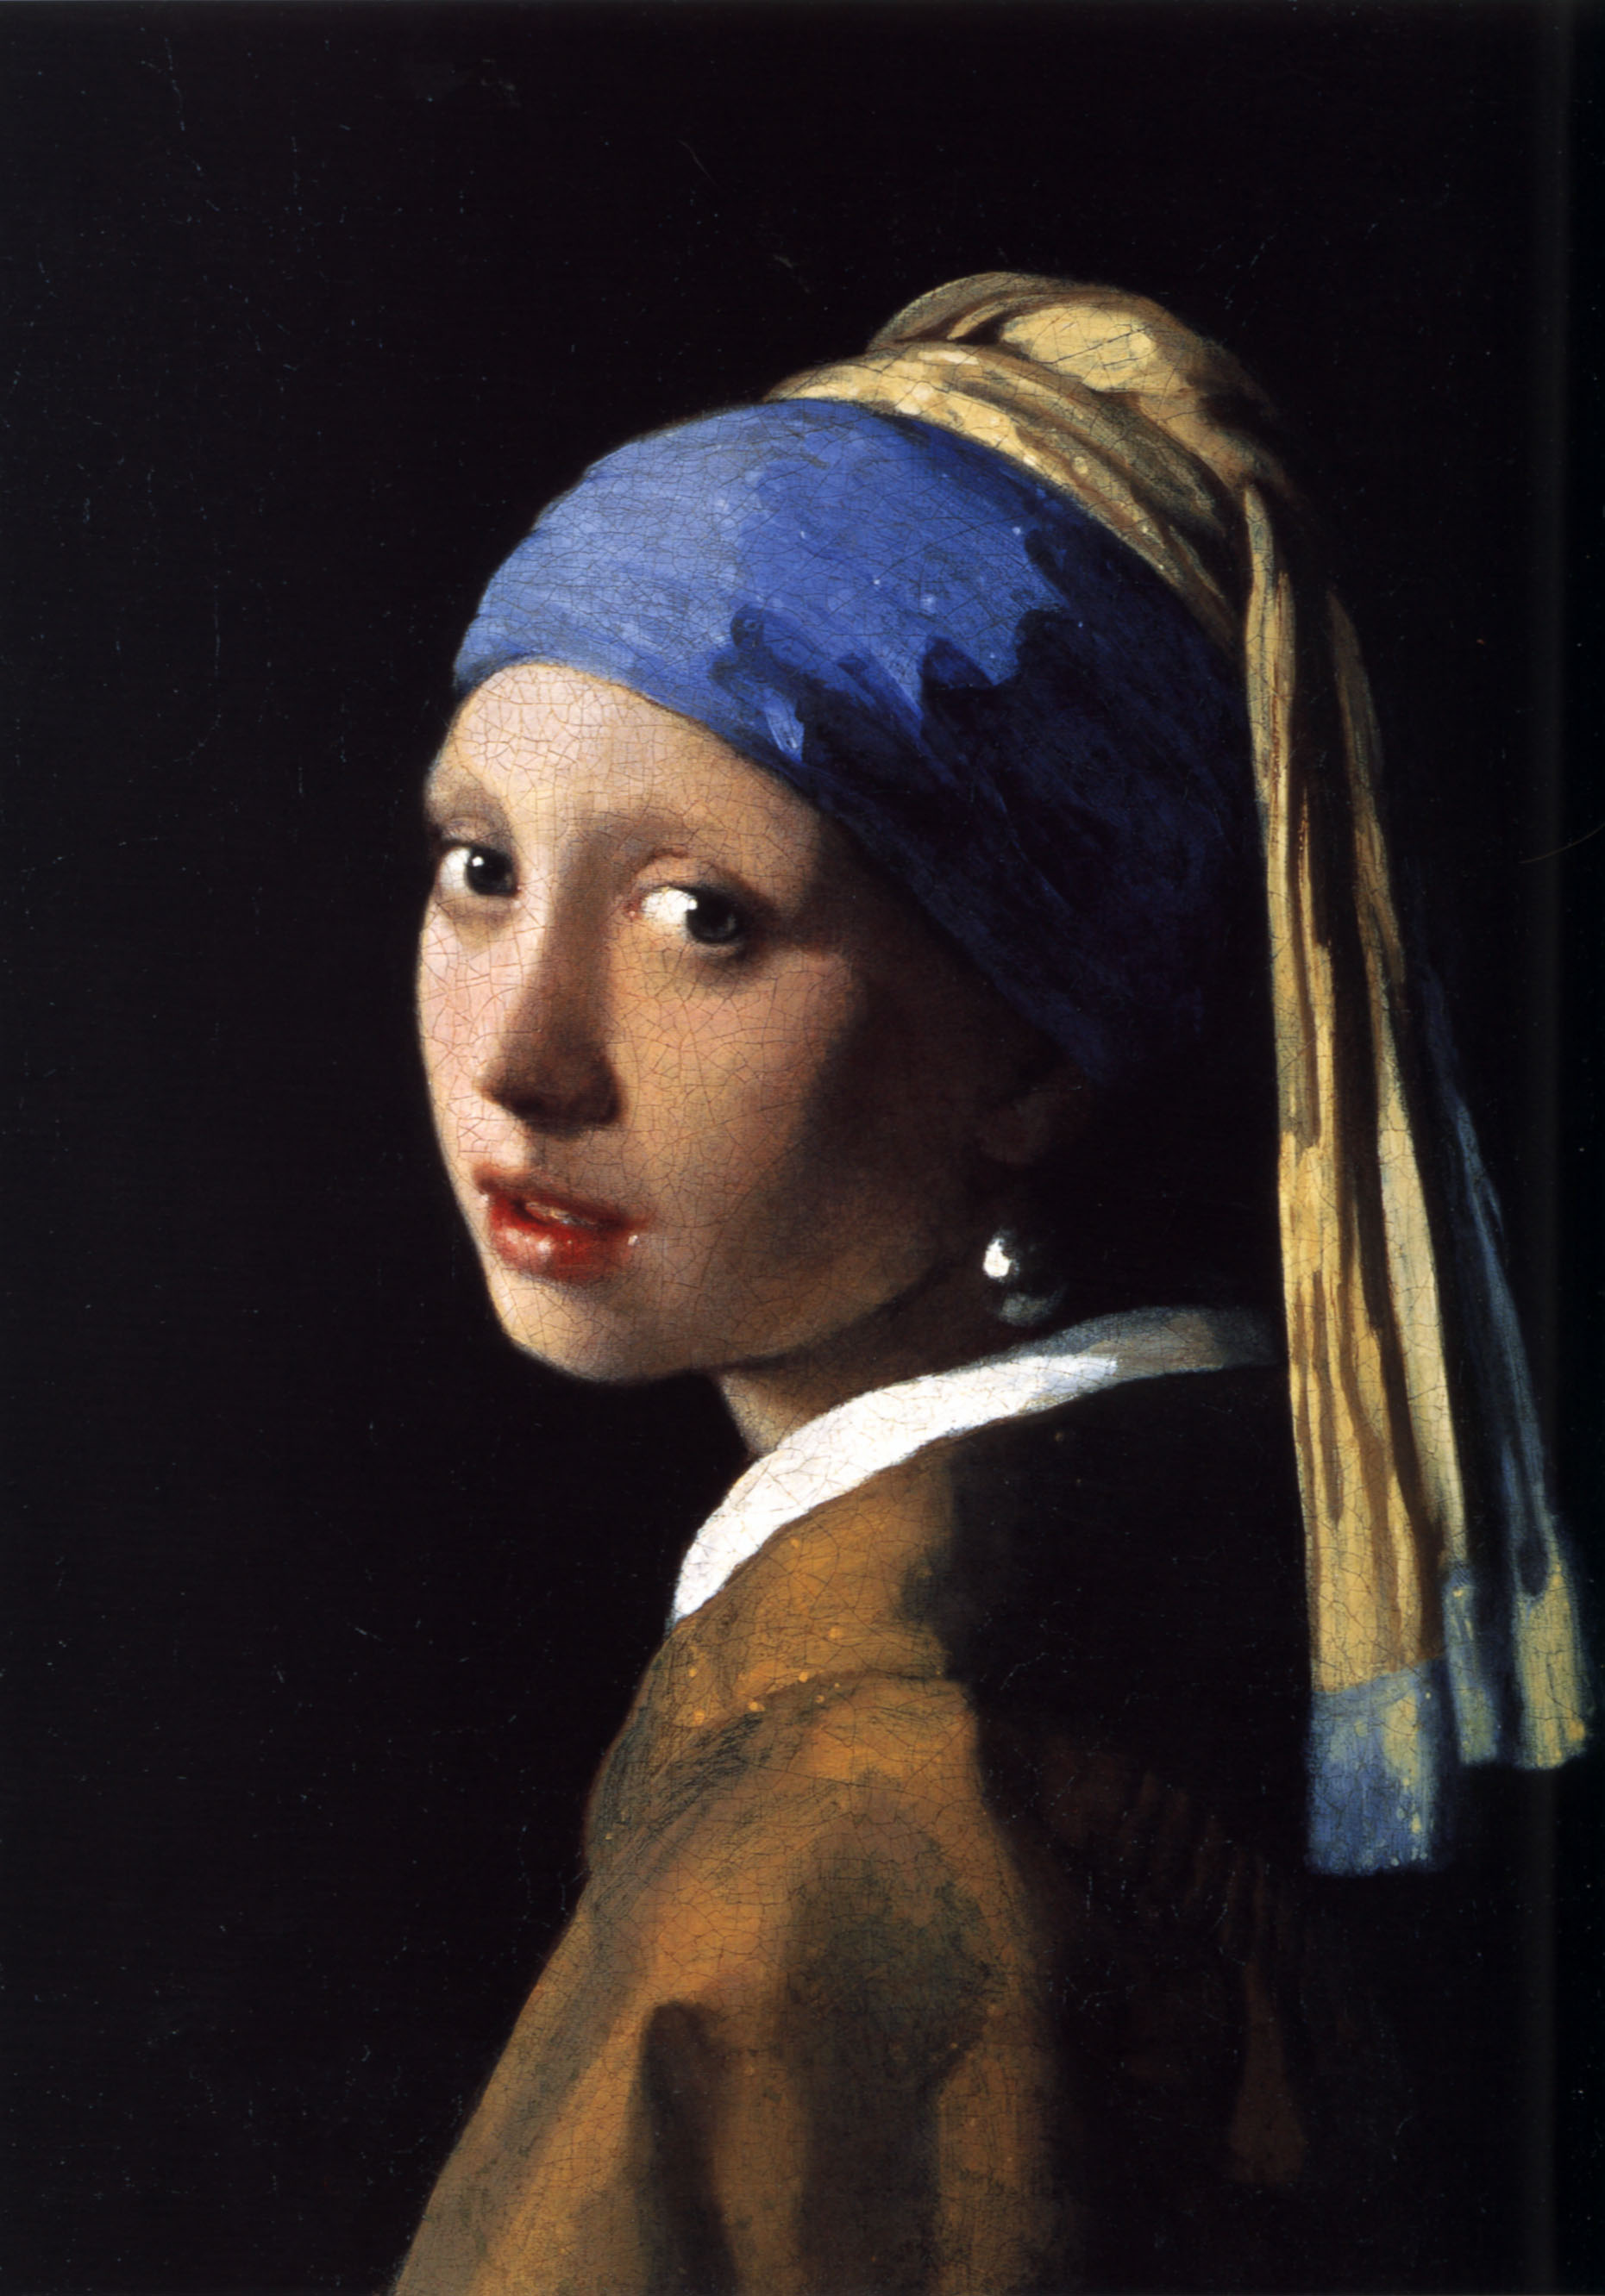 http://upload.wikimedia.org/wikipedia/commons/6/66/Johannes_Vermeer_%281632-1675%29_-_The_Girl_With_The_Pearl_Earring_%281665%29.jpg